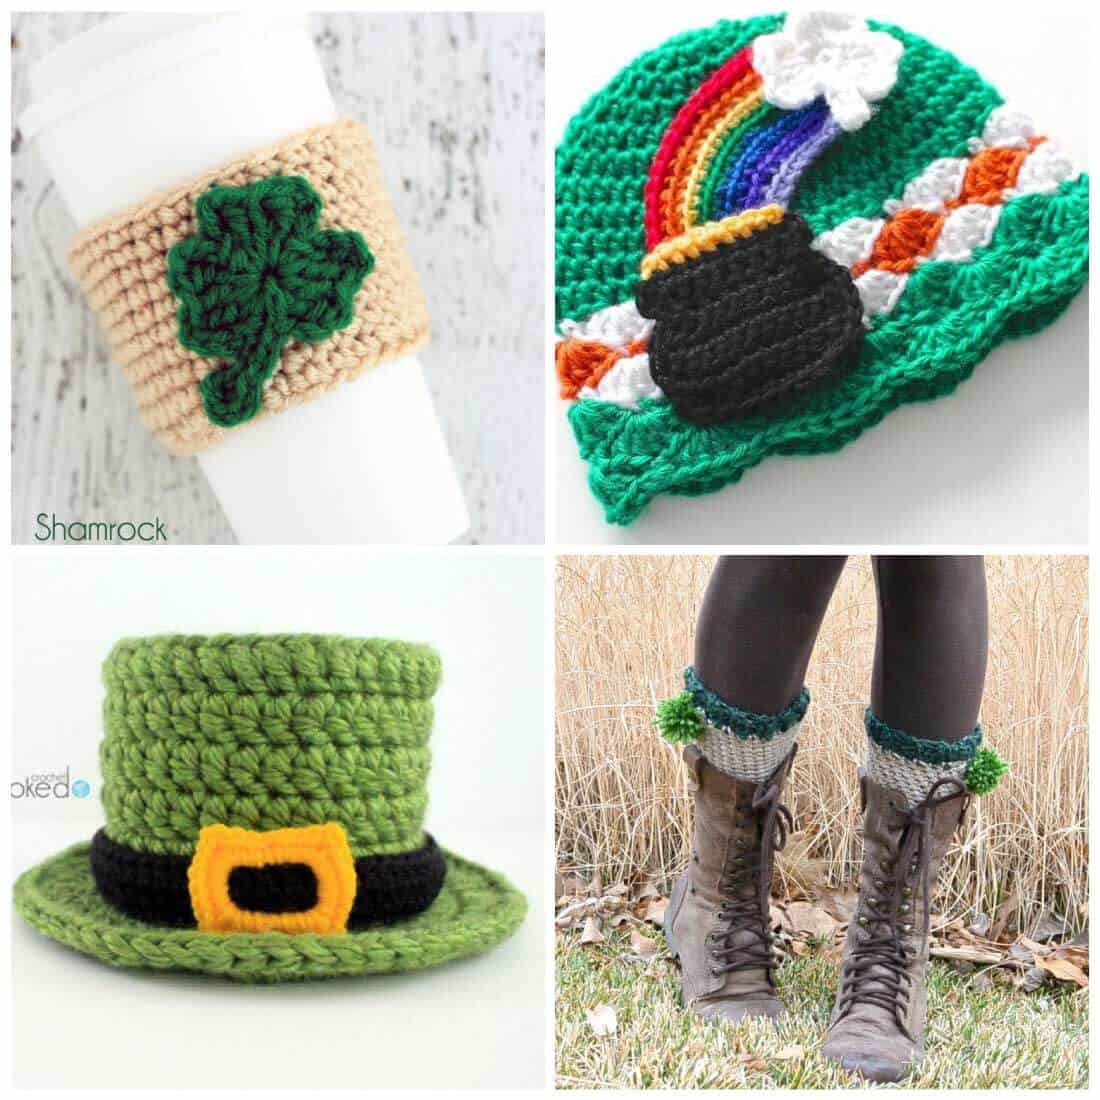 free crochet patterns | St. Patrick's Day | easy crochet patterns | crochet patterns | Use these free crochet patterns to whip something up in time for St. Patrick's Day. Bright and fun, these are a fun way to go green and get in touch with your Irish side.